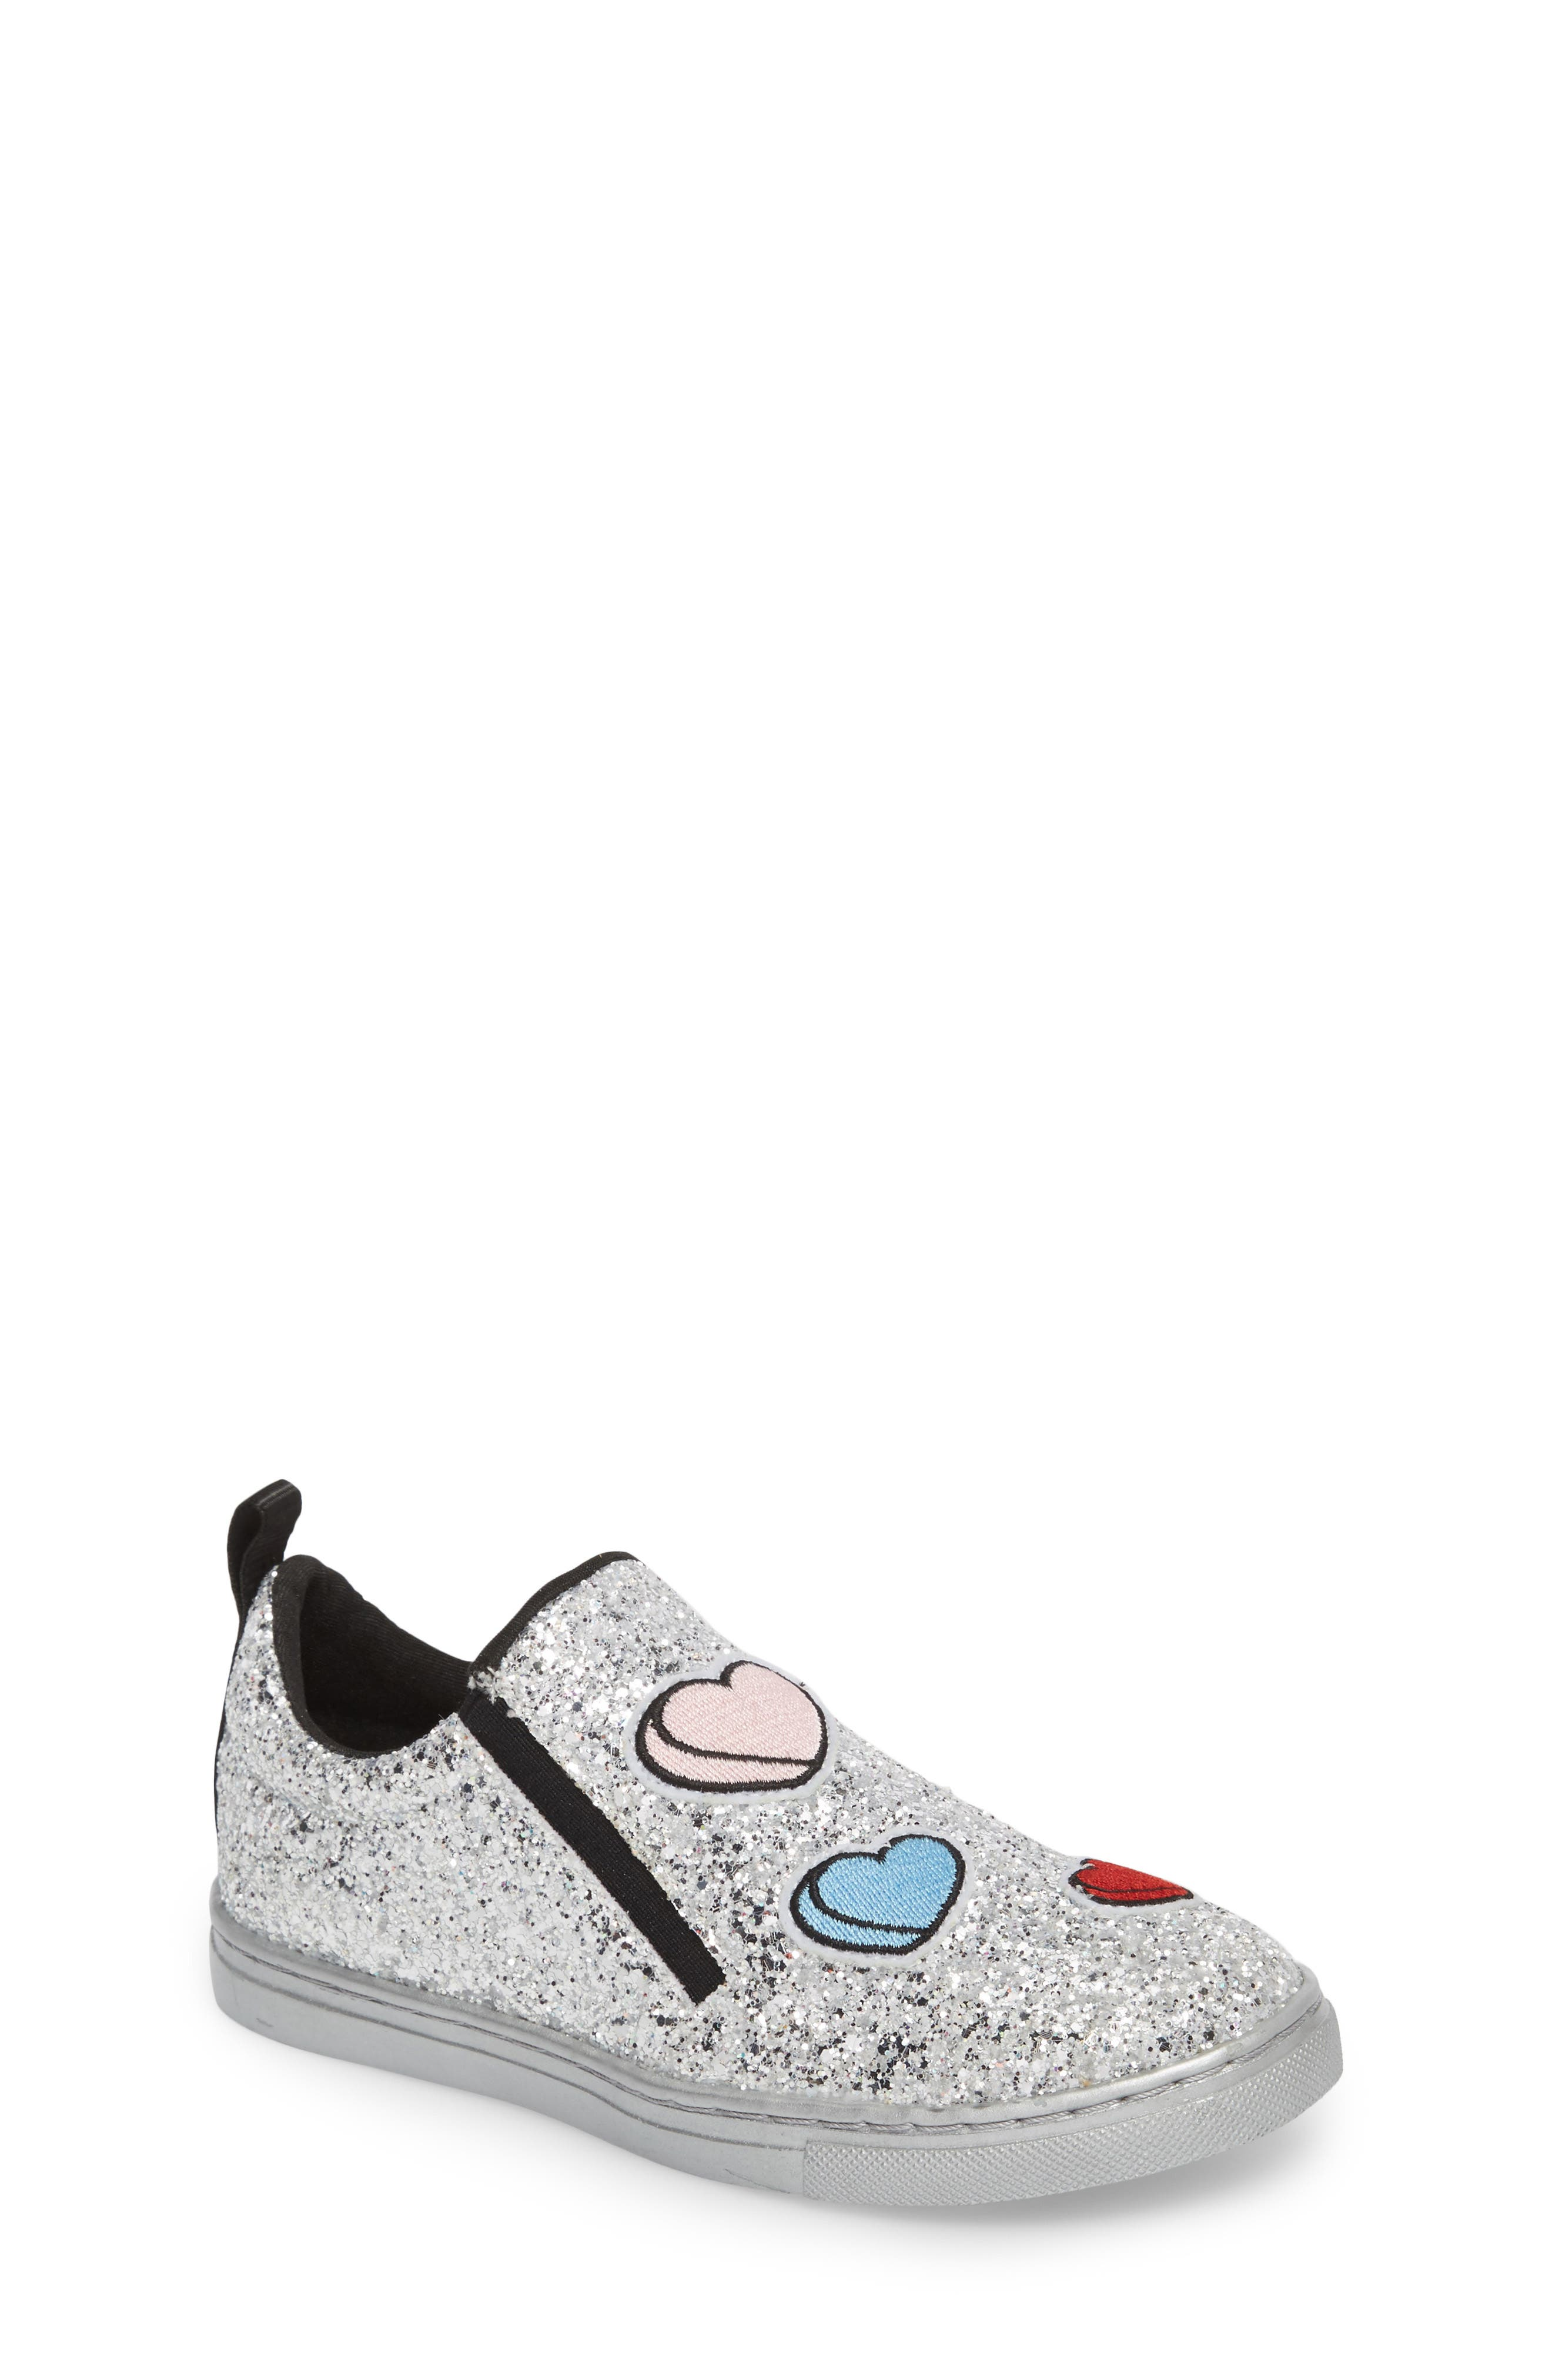 Zach Sneaker,                             Main thumbnail 1, color,                             Silver Multi Glitter